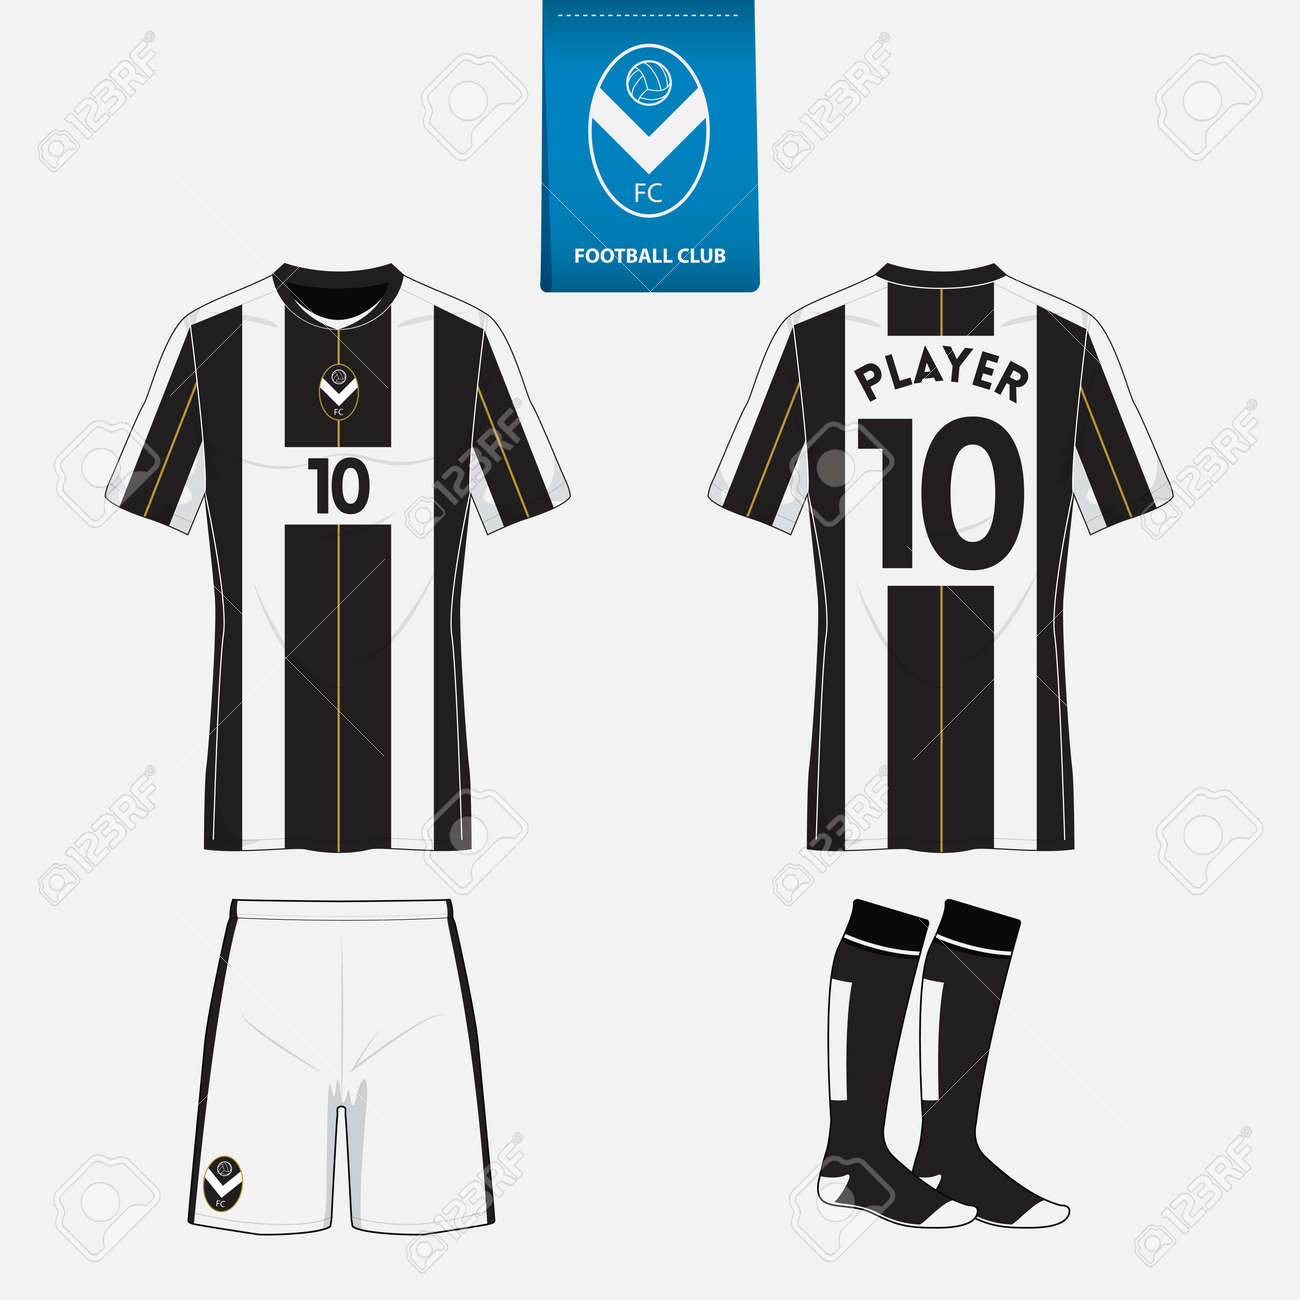 Set Of Soccer Kit Or Football Jersey Template For Club Flat Logo On